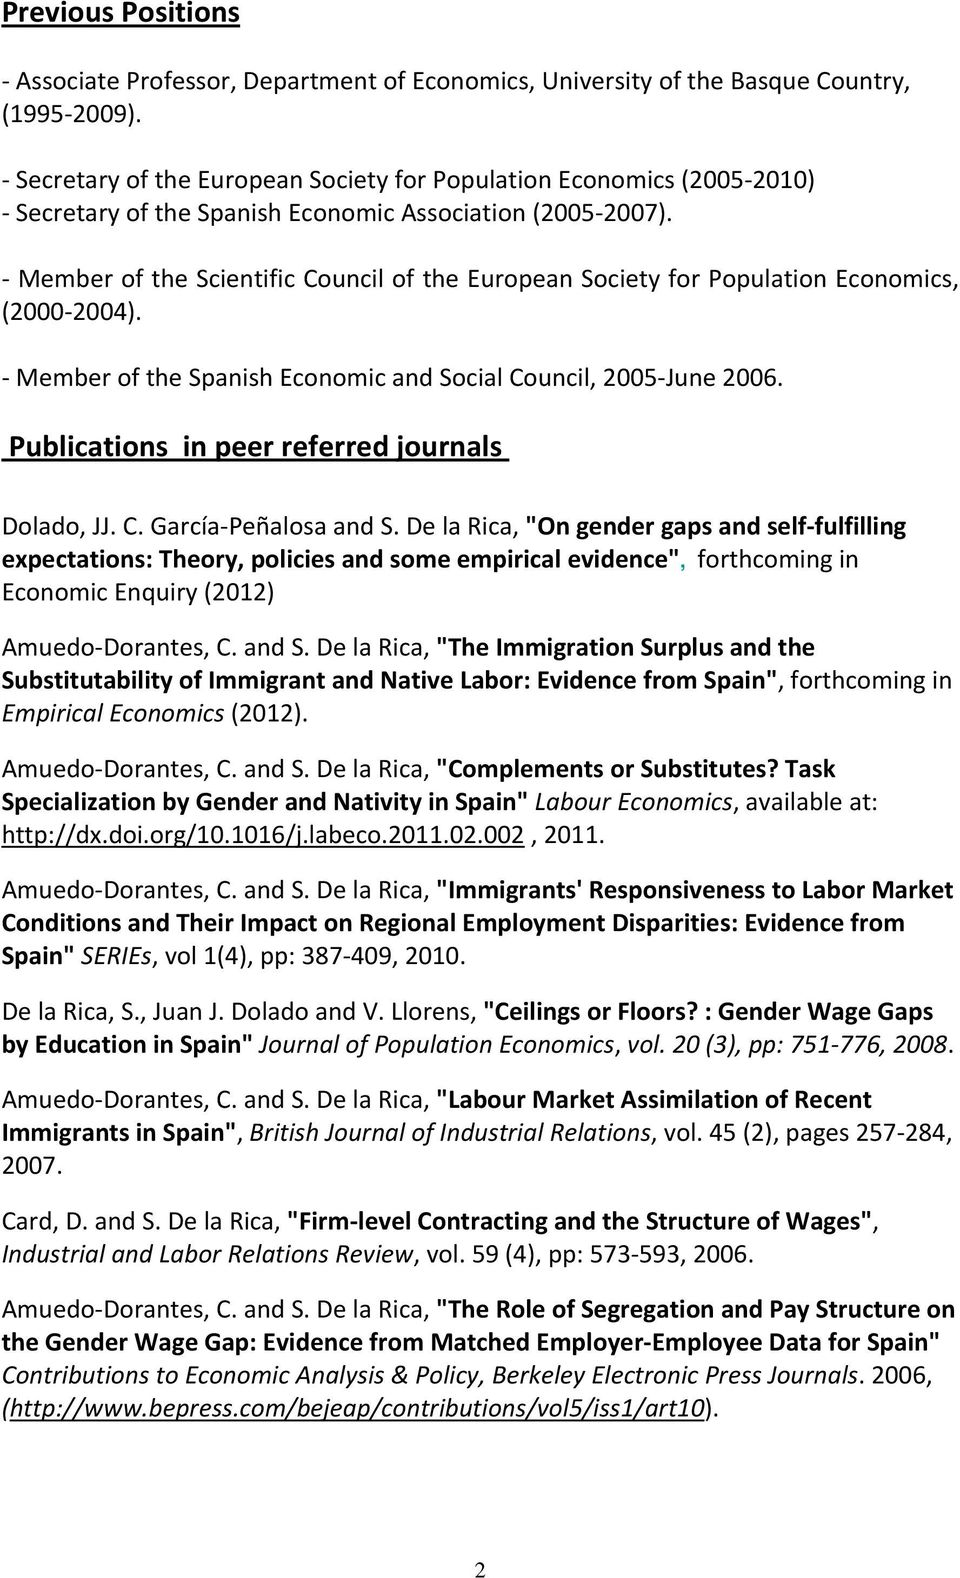 Member of the Scientific Council of the European Society for Population Economics, (2000 2004). Member of the Spanish Economic and Social Council, 2005 June 2006.